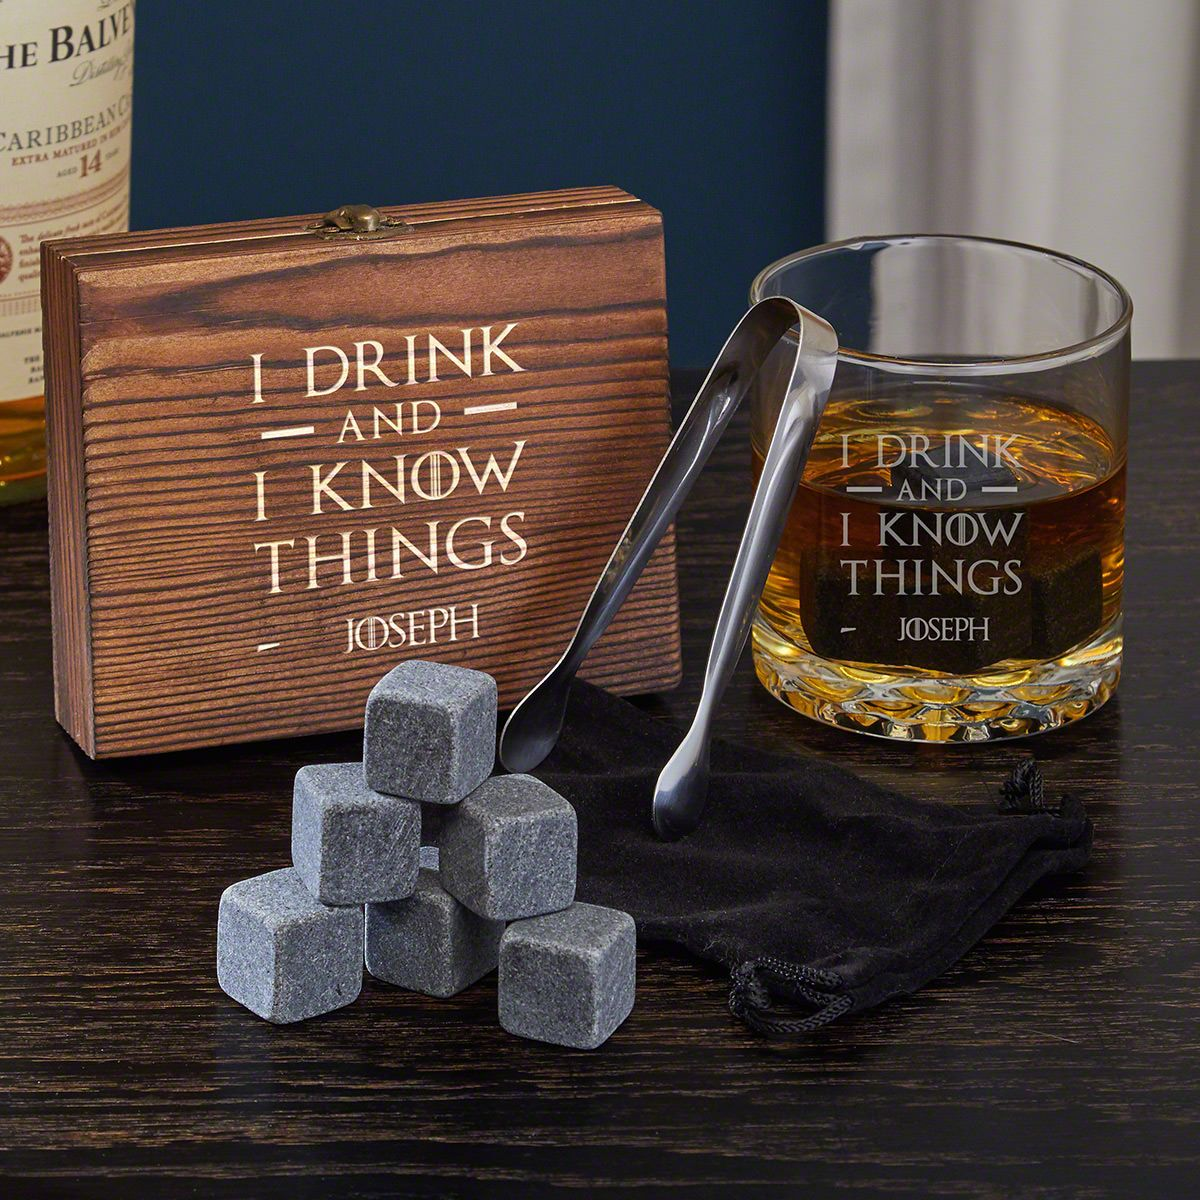 I Drink And I Know Things Personalized Whiskey Gift Set with Buckman Glass